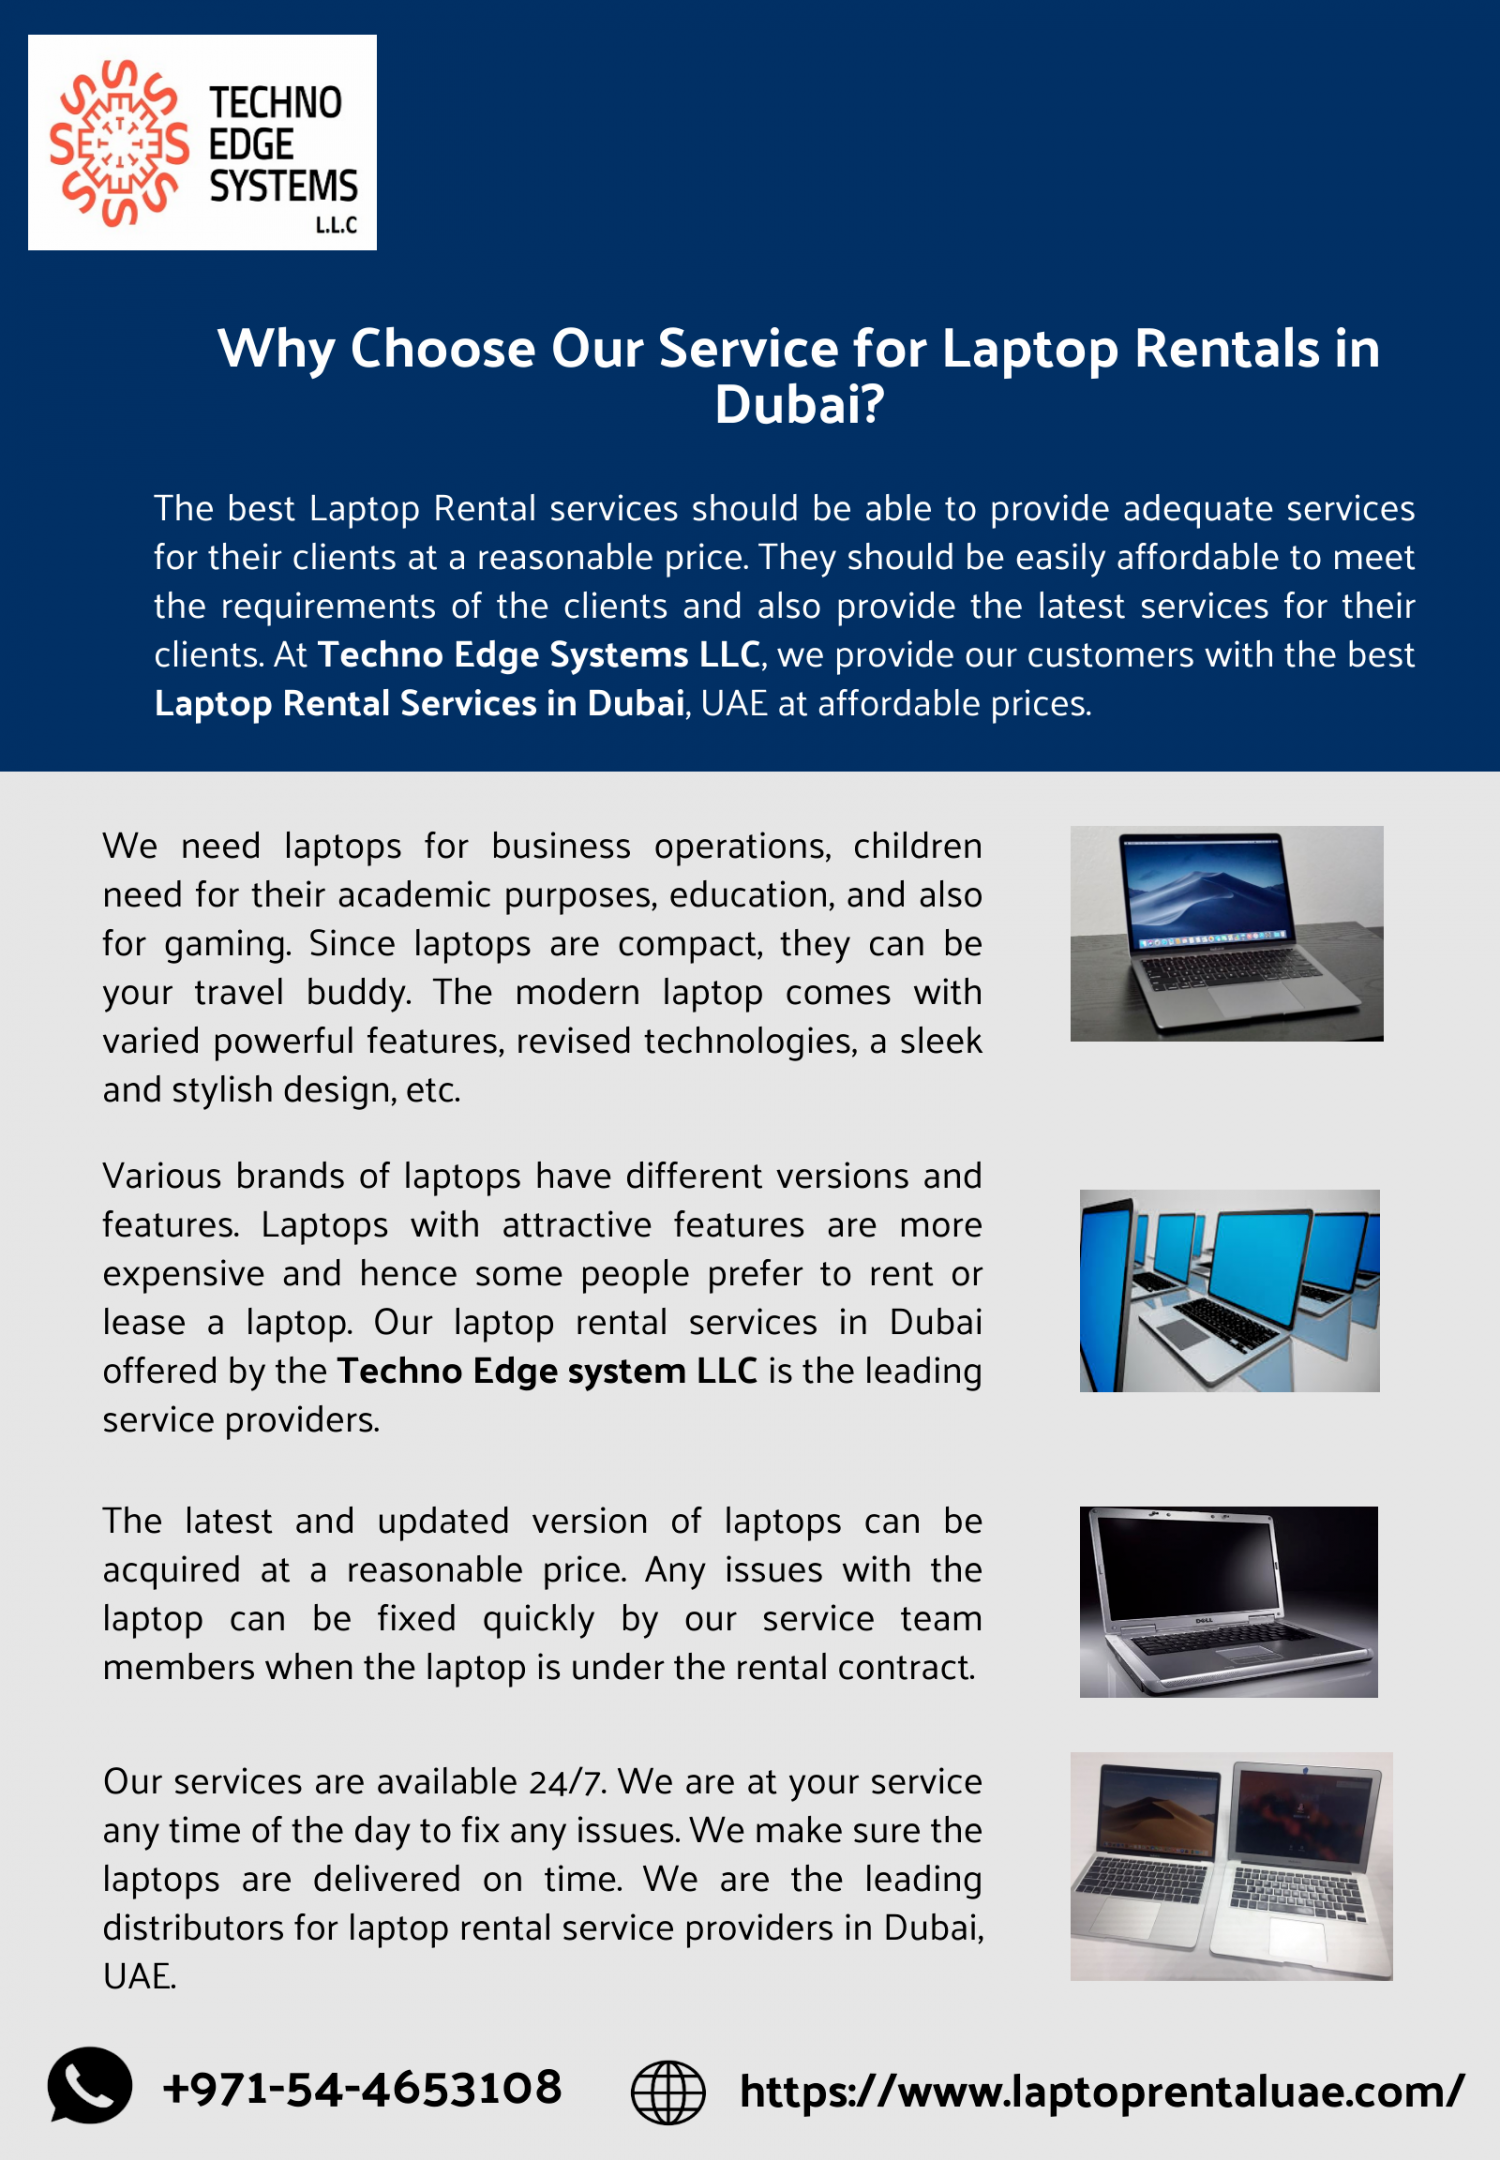 Why Choose Our Service for Laptop Rentals in Dubai? Infographic